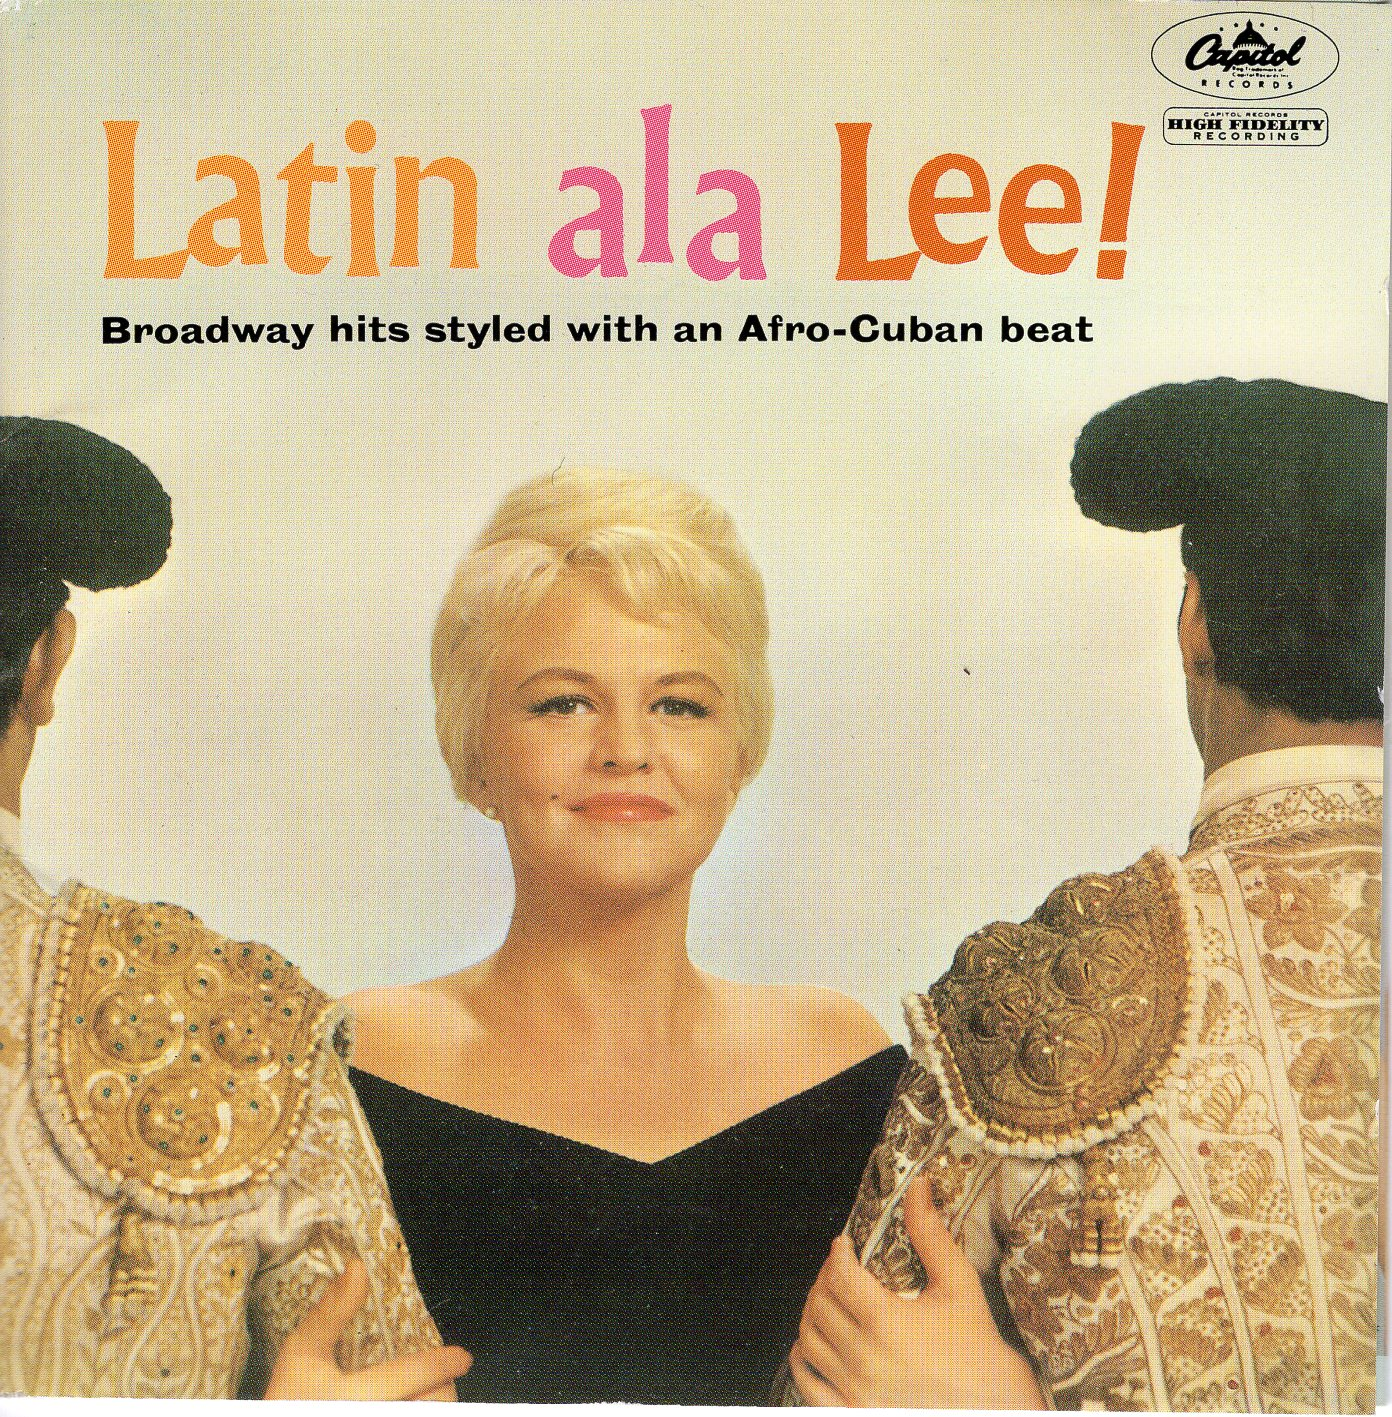 """Latin Ala Lee! Broadway Hits Style With An Afro-Cuban Beat"""